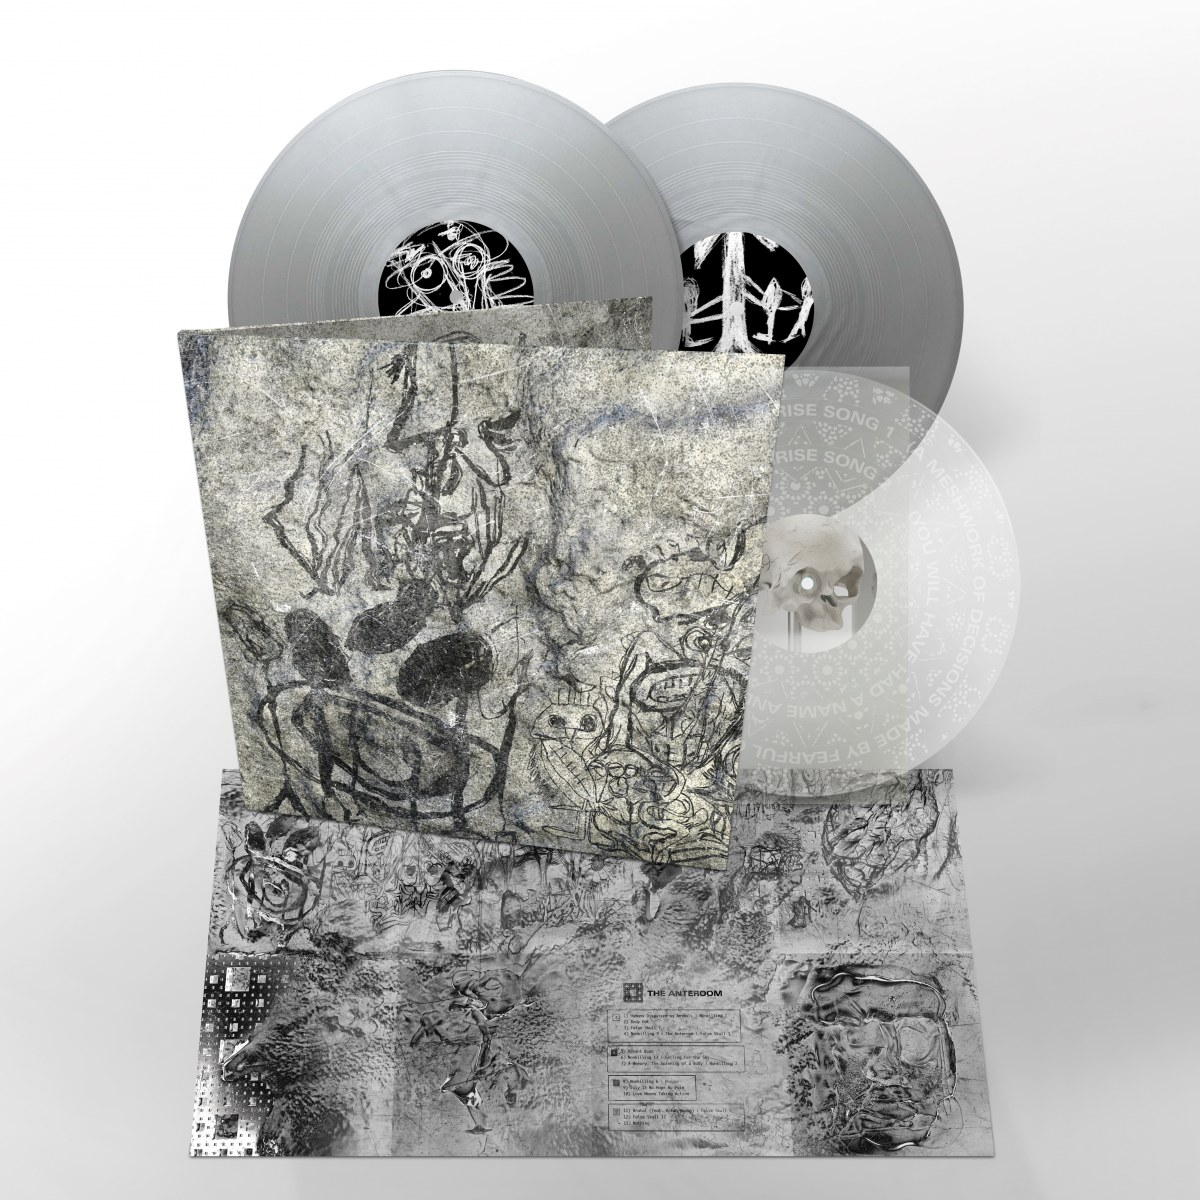 How To Dress Well The Anteroom Limited Edition Double Lp 10 Domino Mart Domino